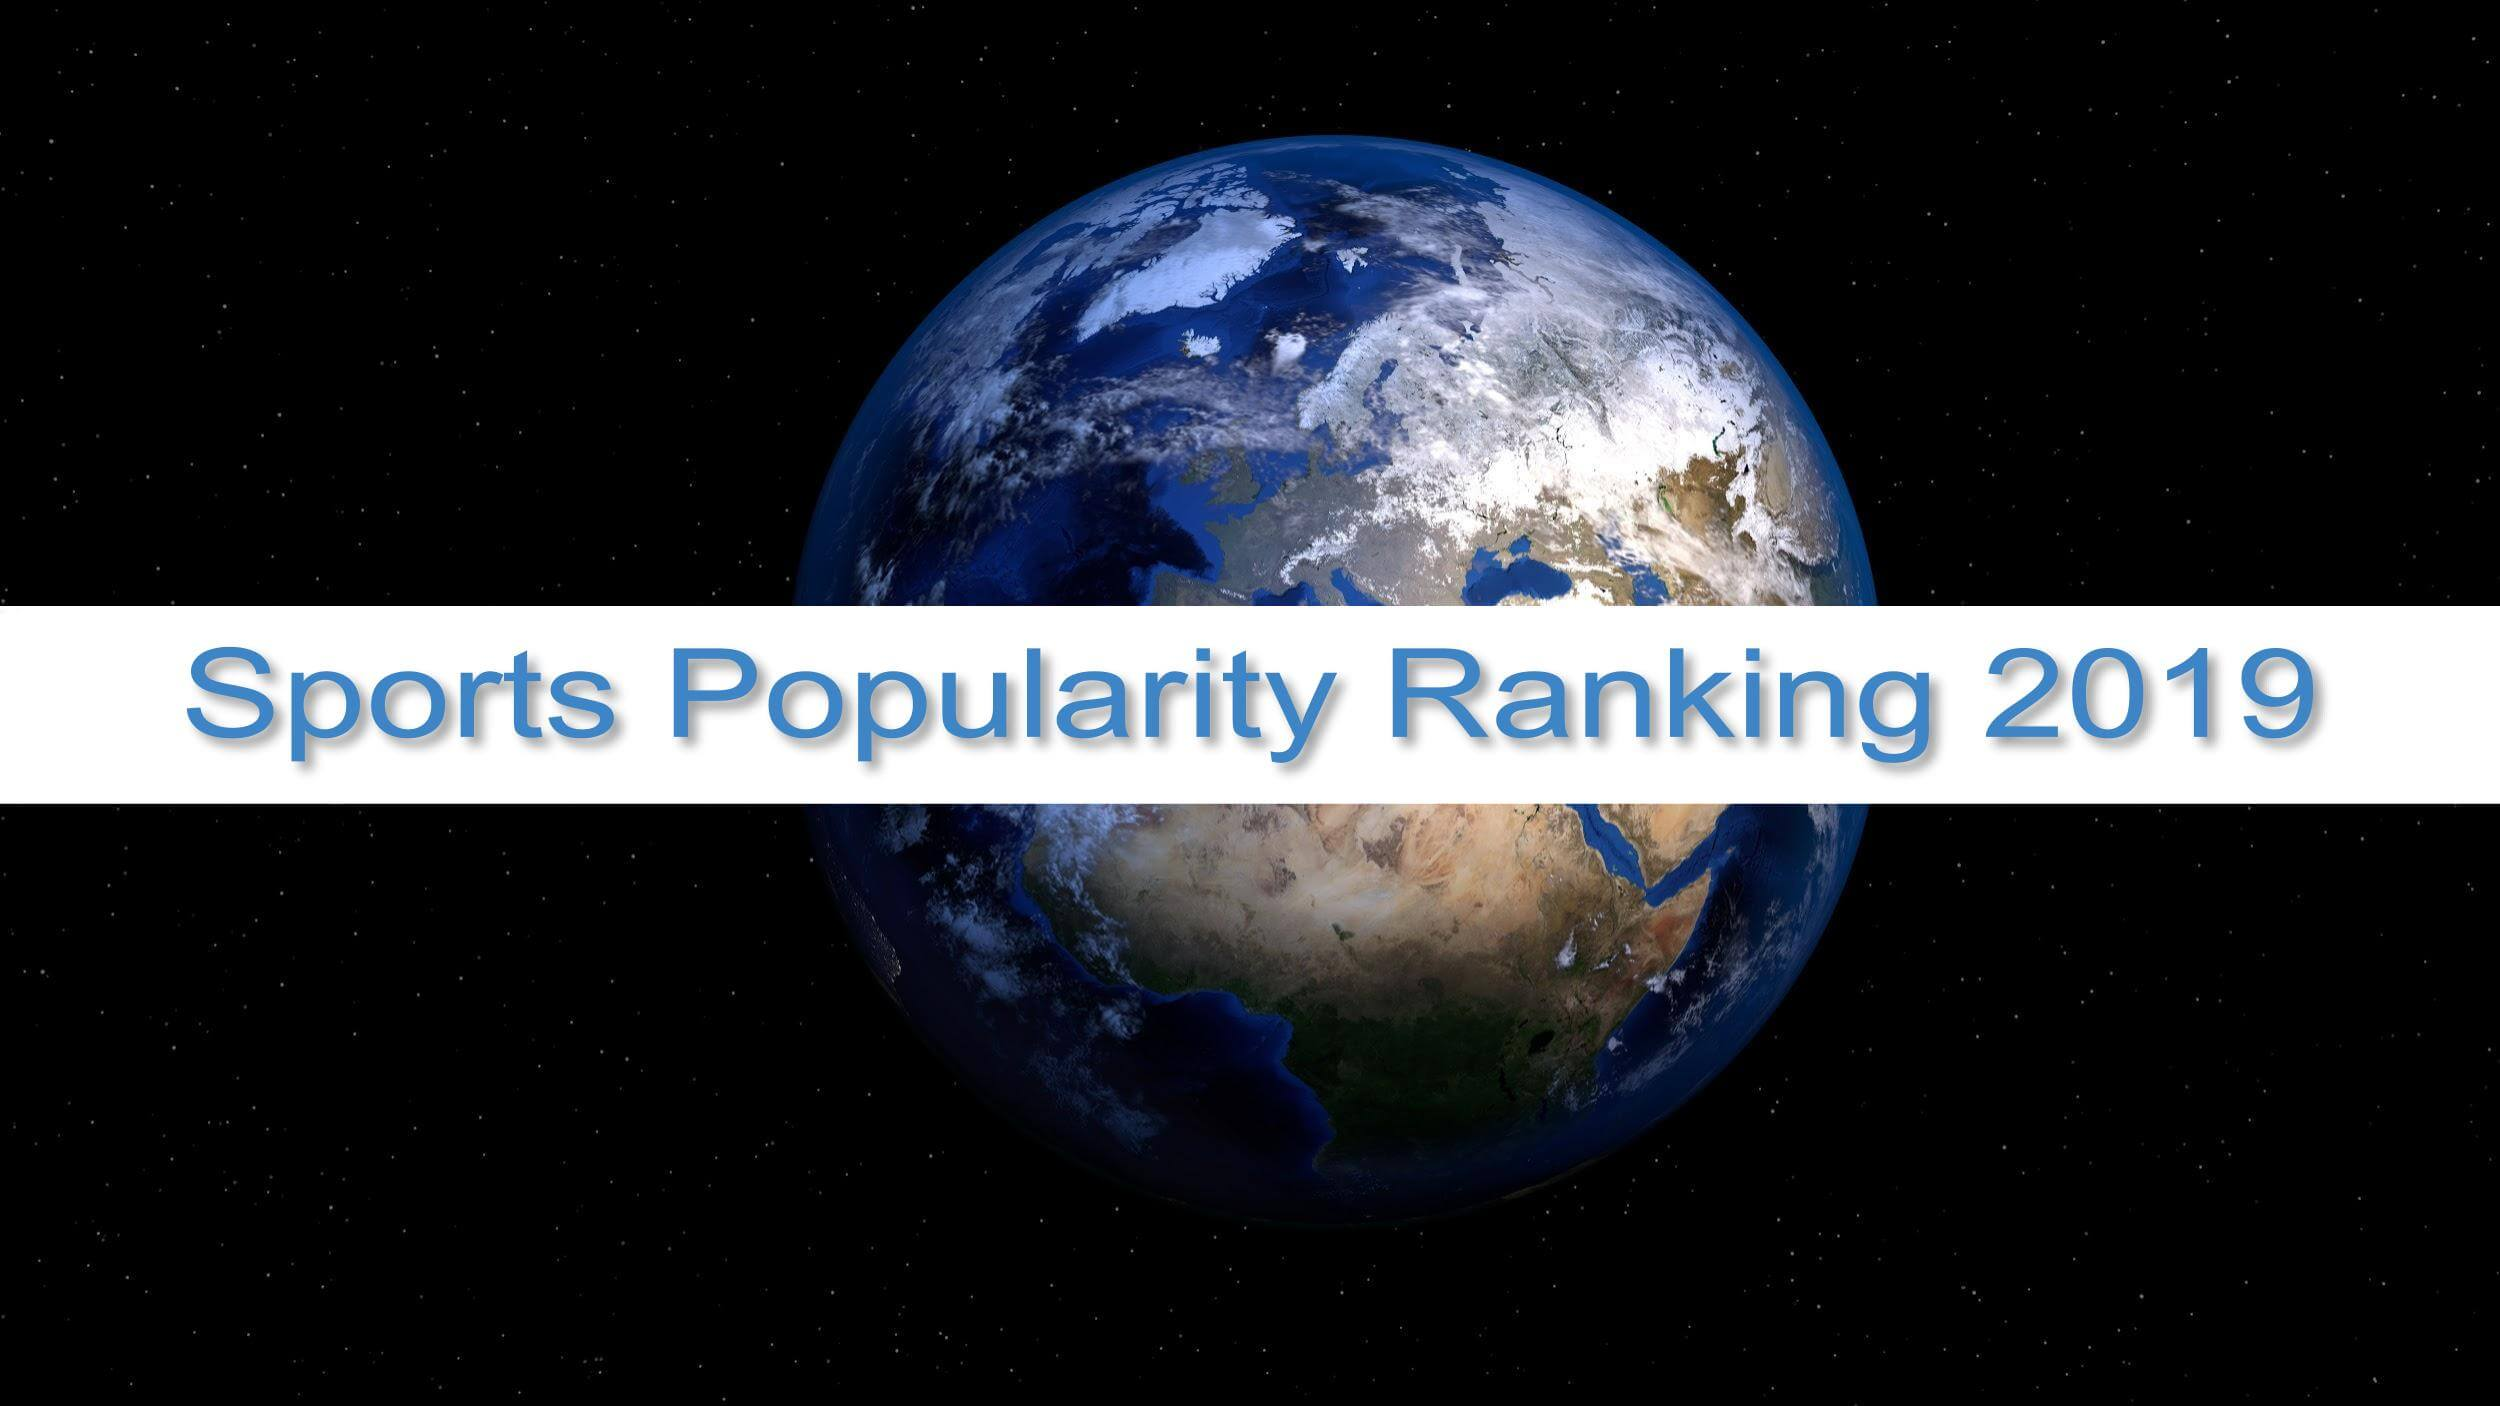 Sports Popularity Ranking 2019